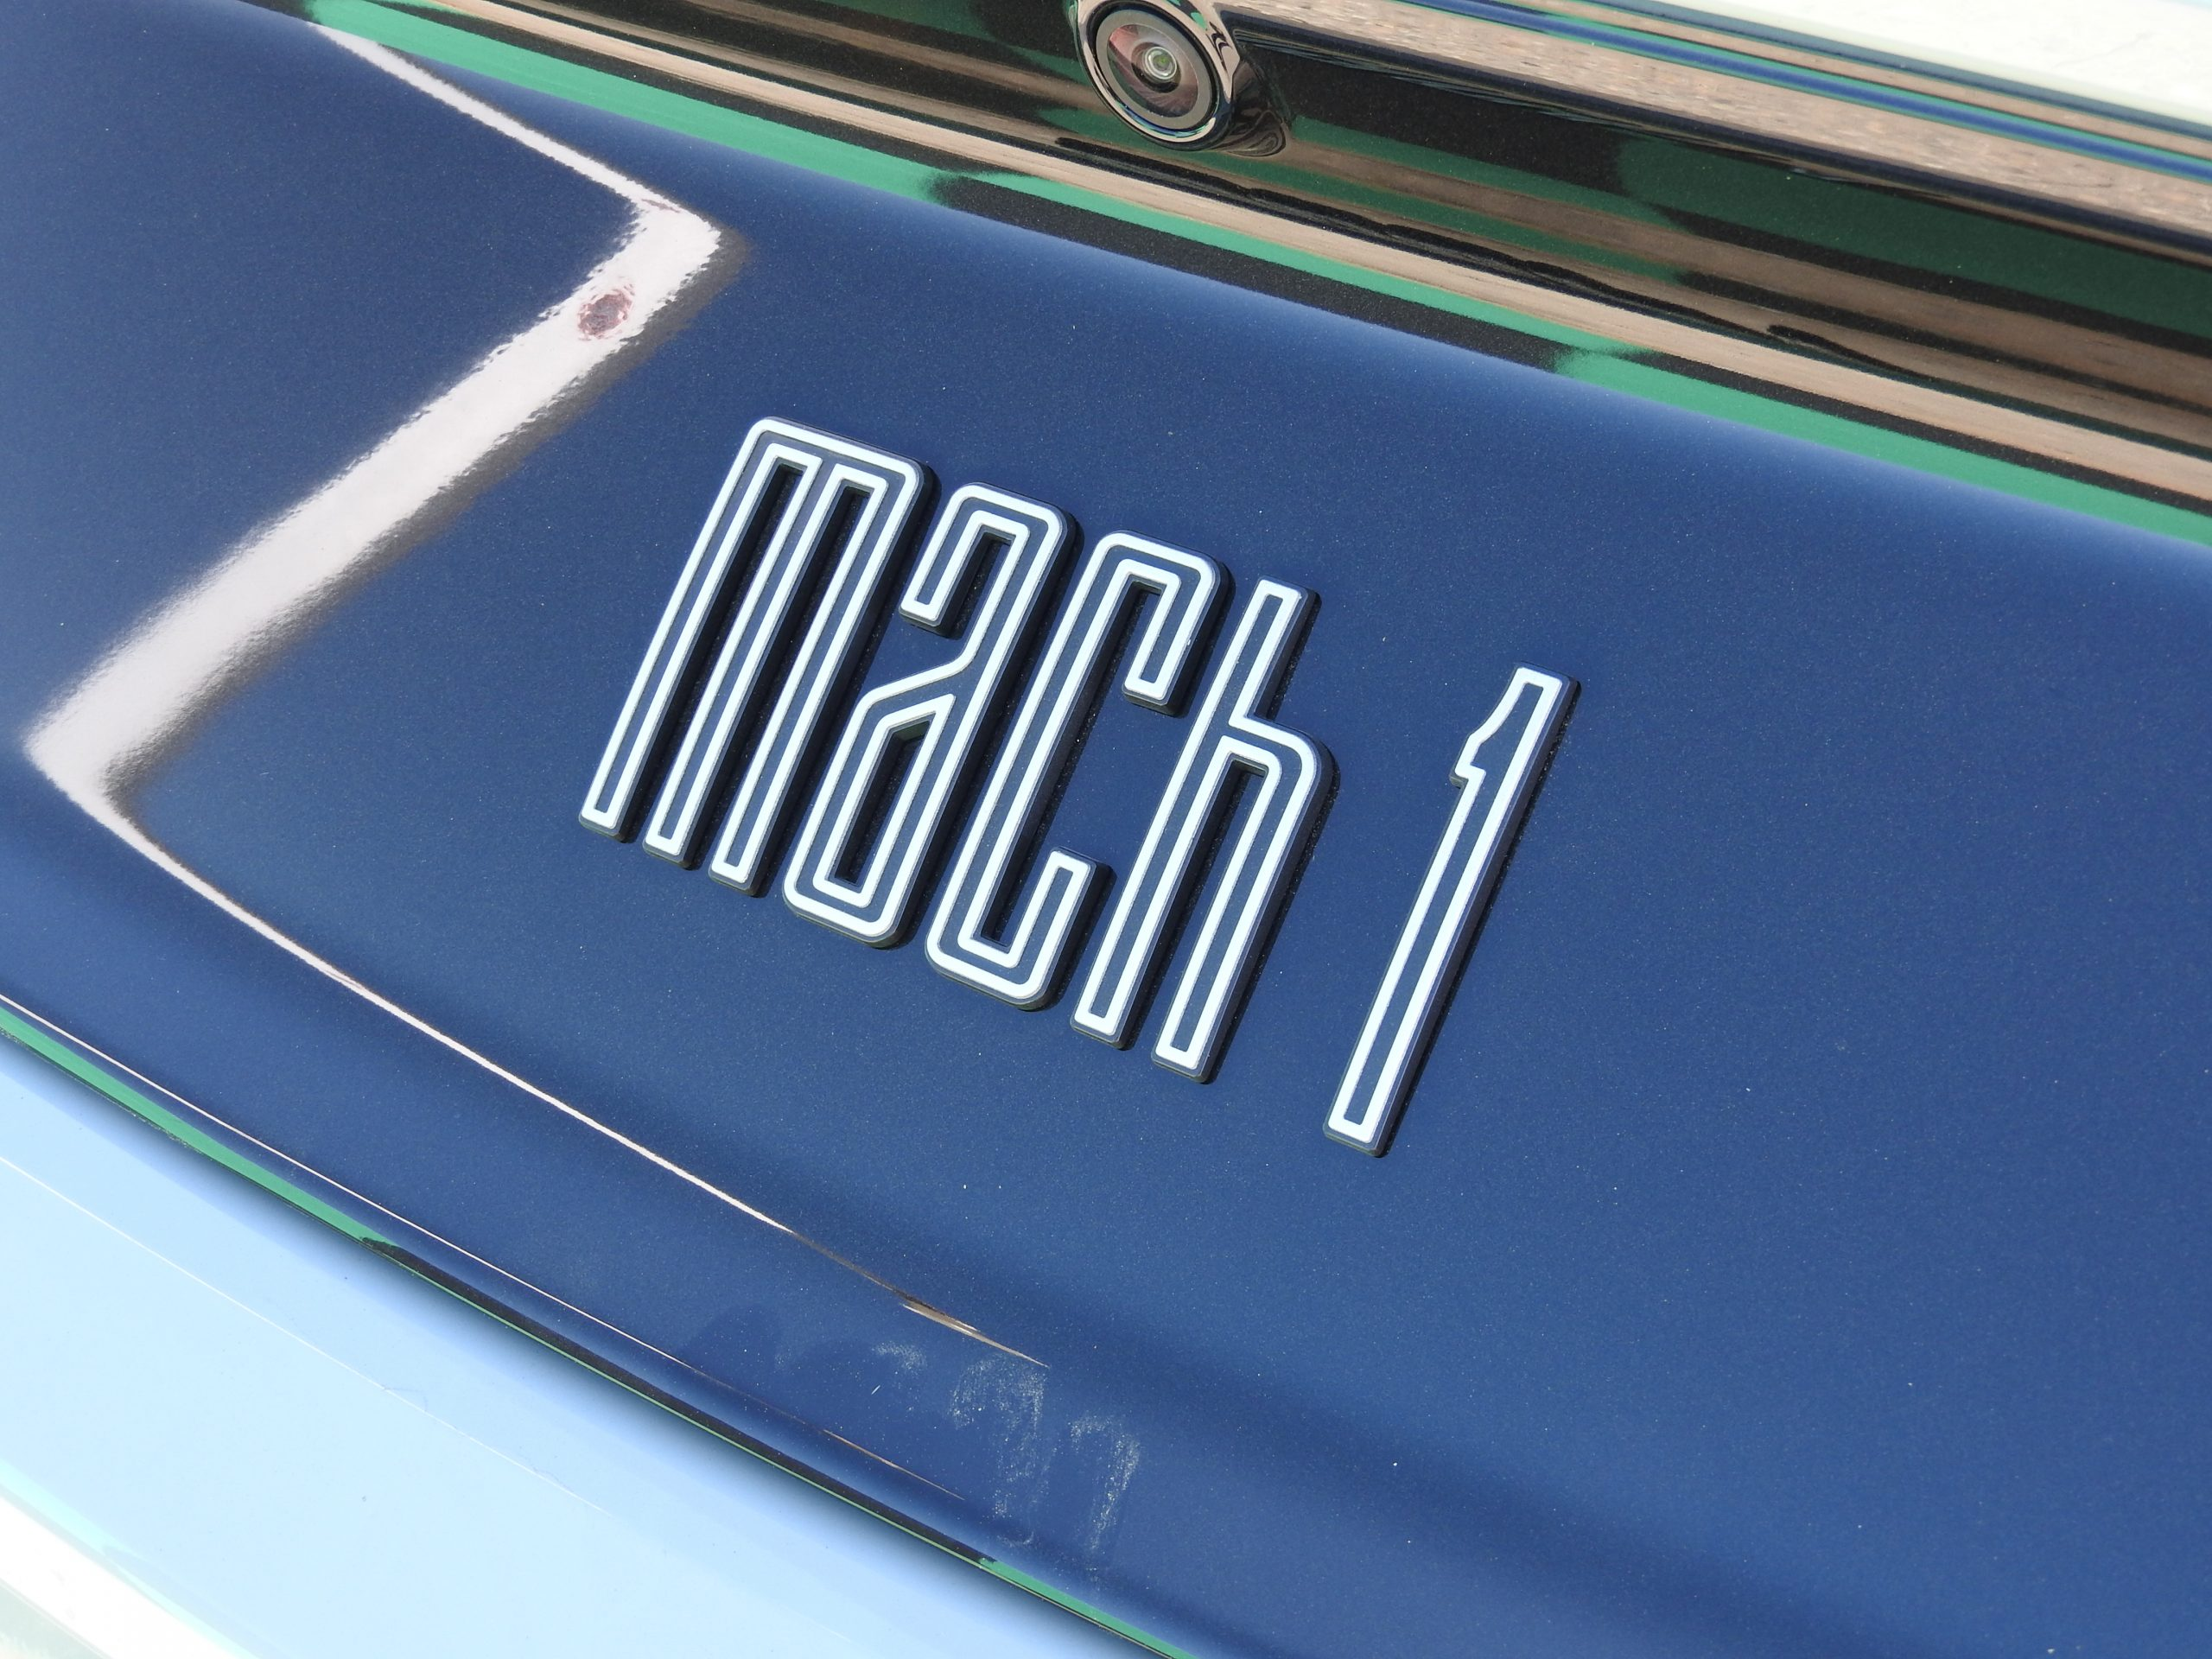 New Mustang Mach 1 badge detail